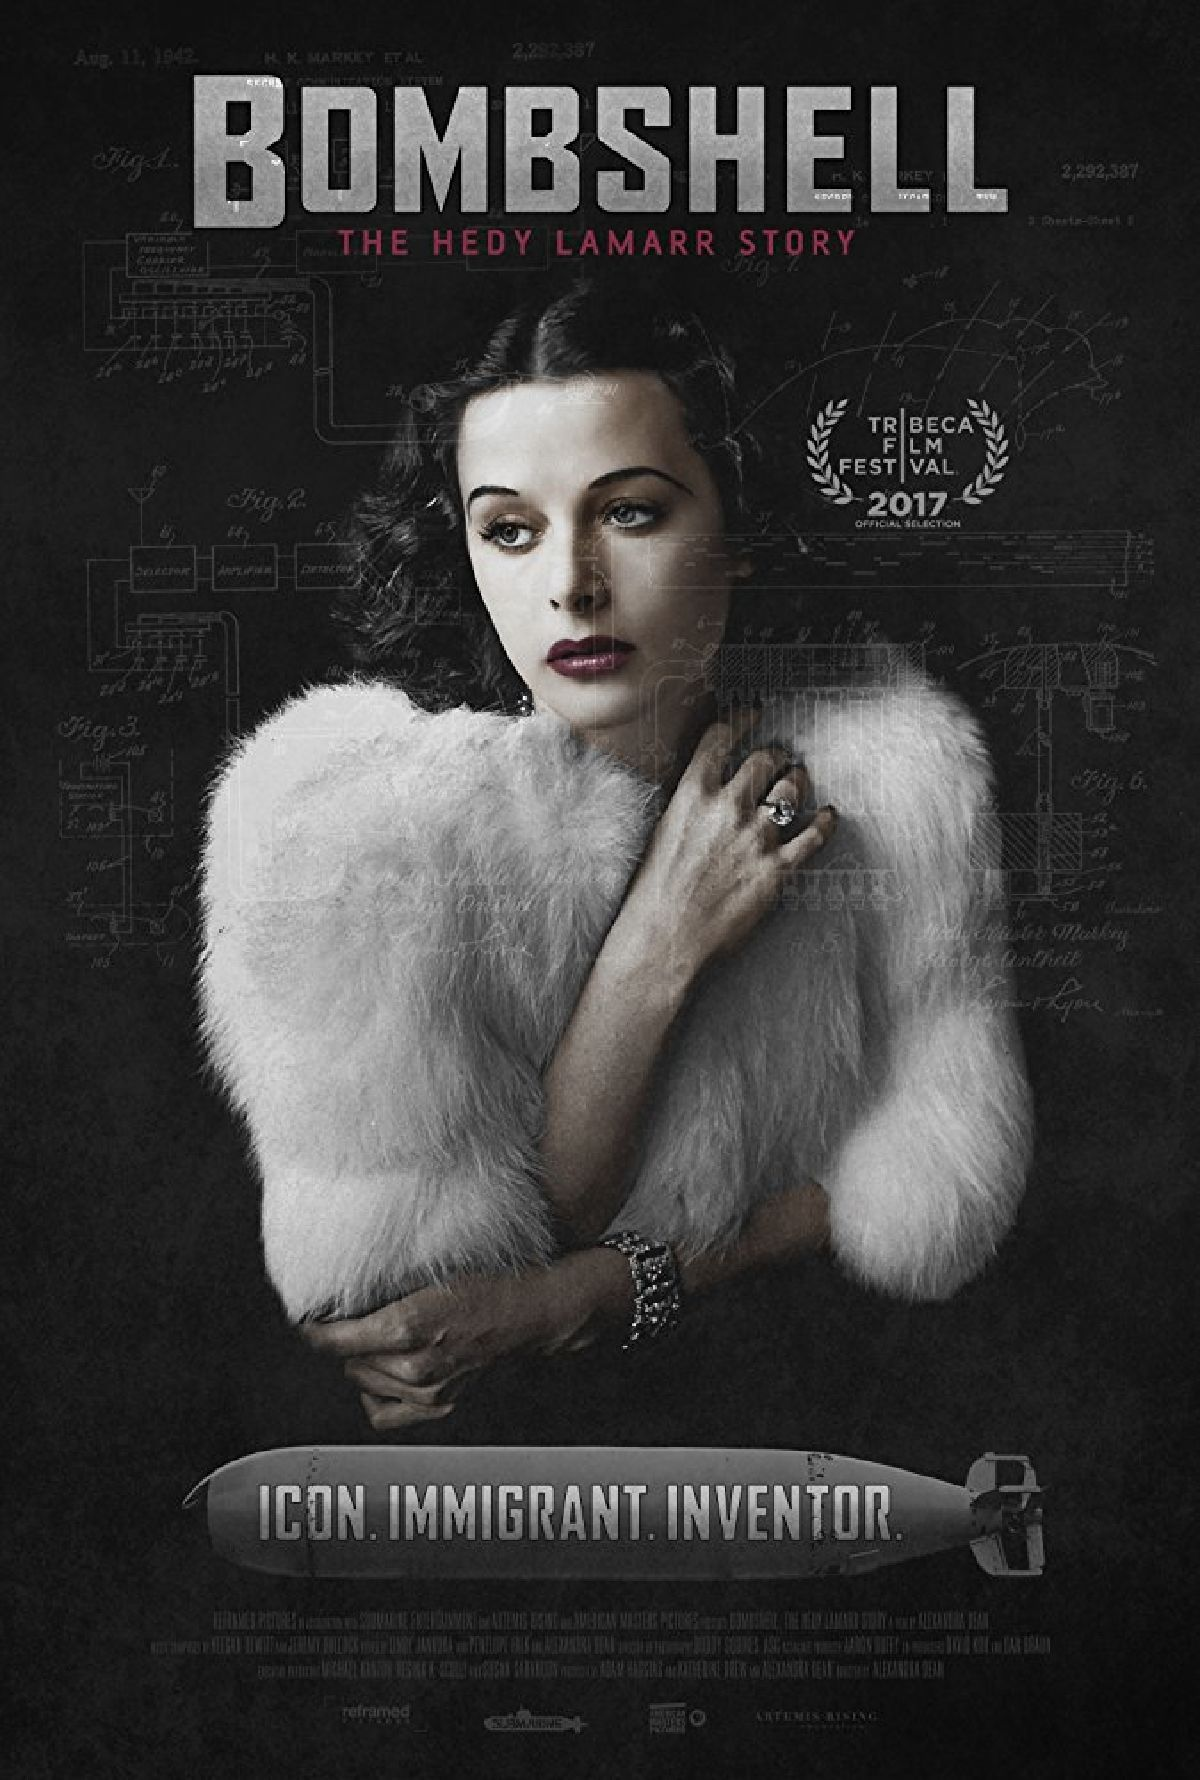 'Bombshell: The Hedy Lamarr Story' movie poster